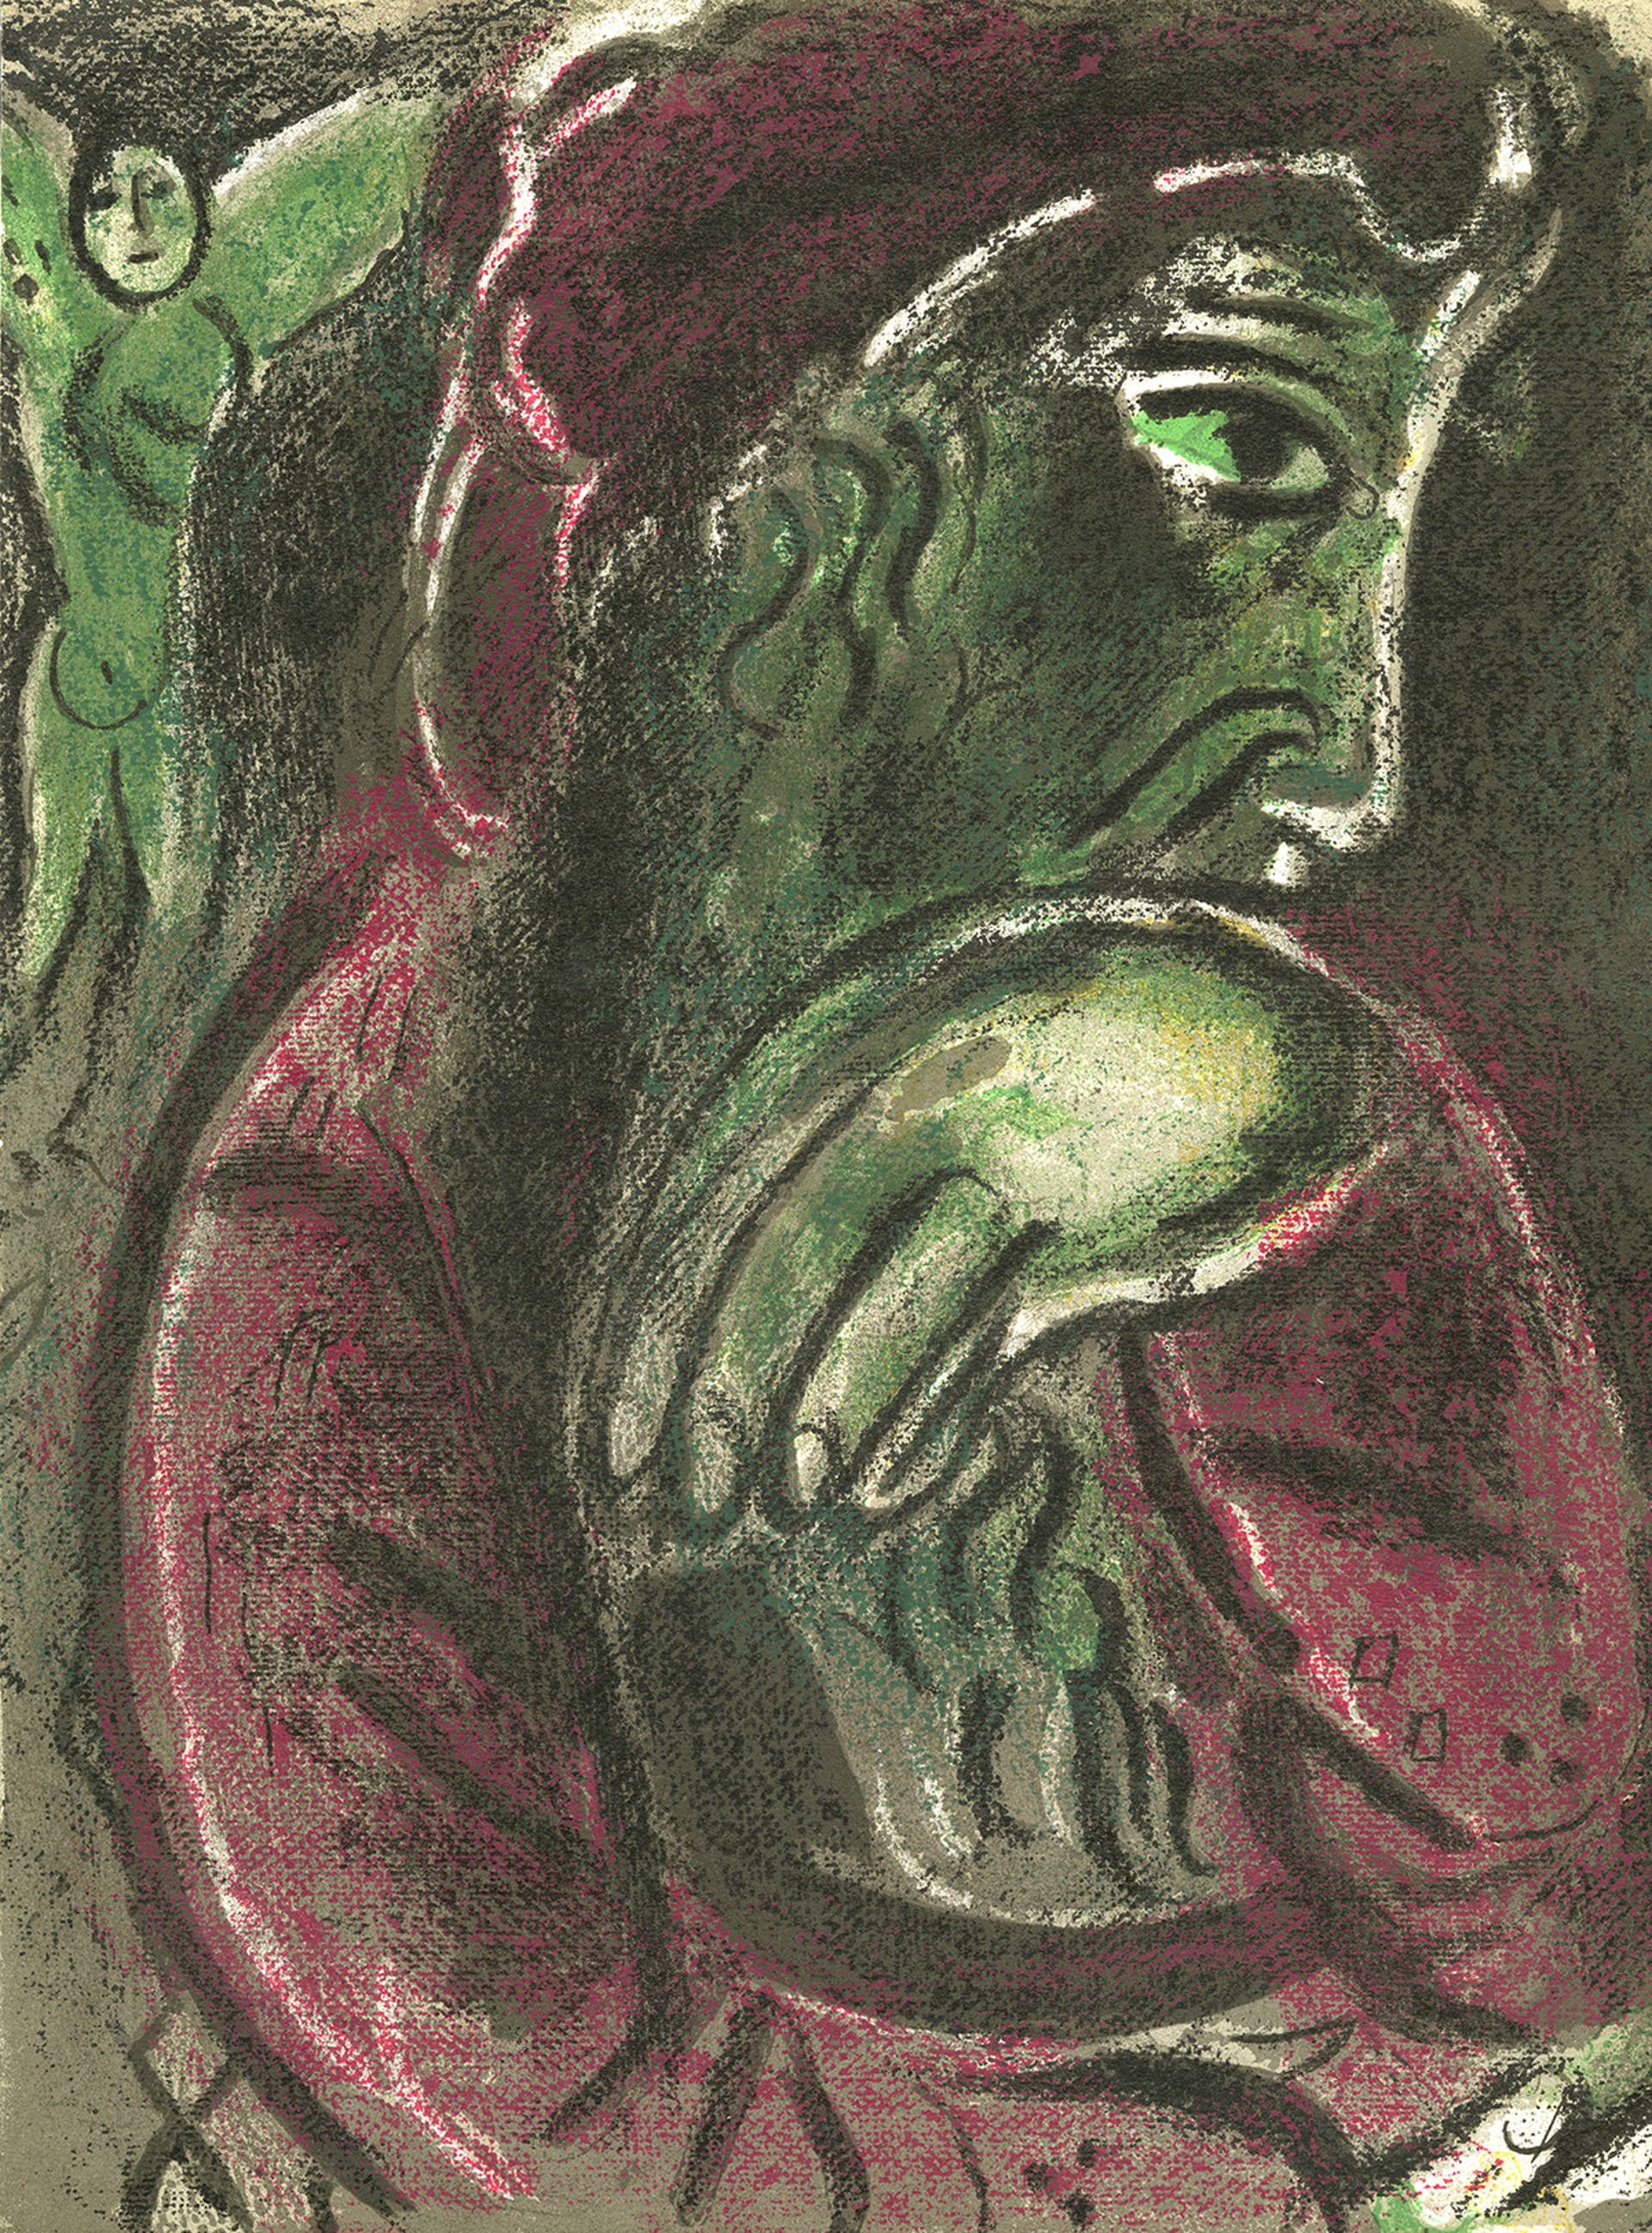 Job Désperé (Job in Despair), M 254/277 by Marc Chagall